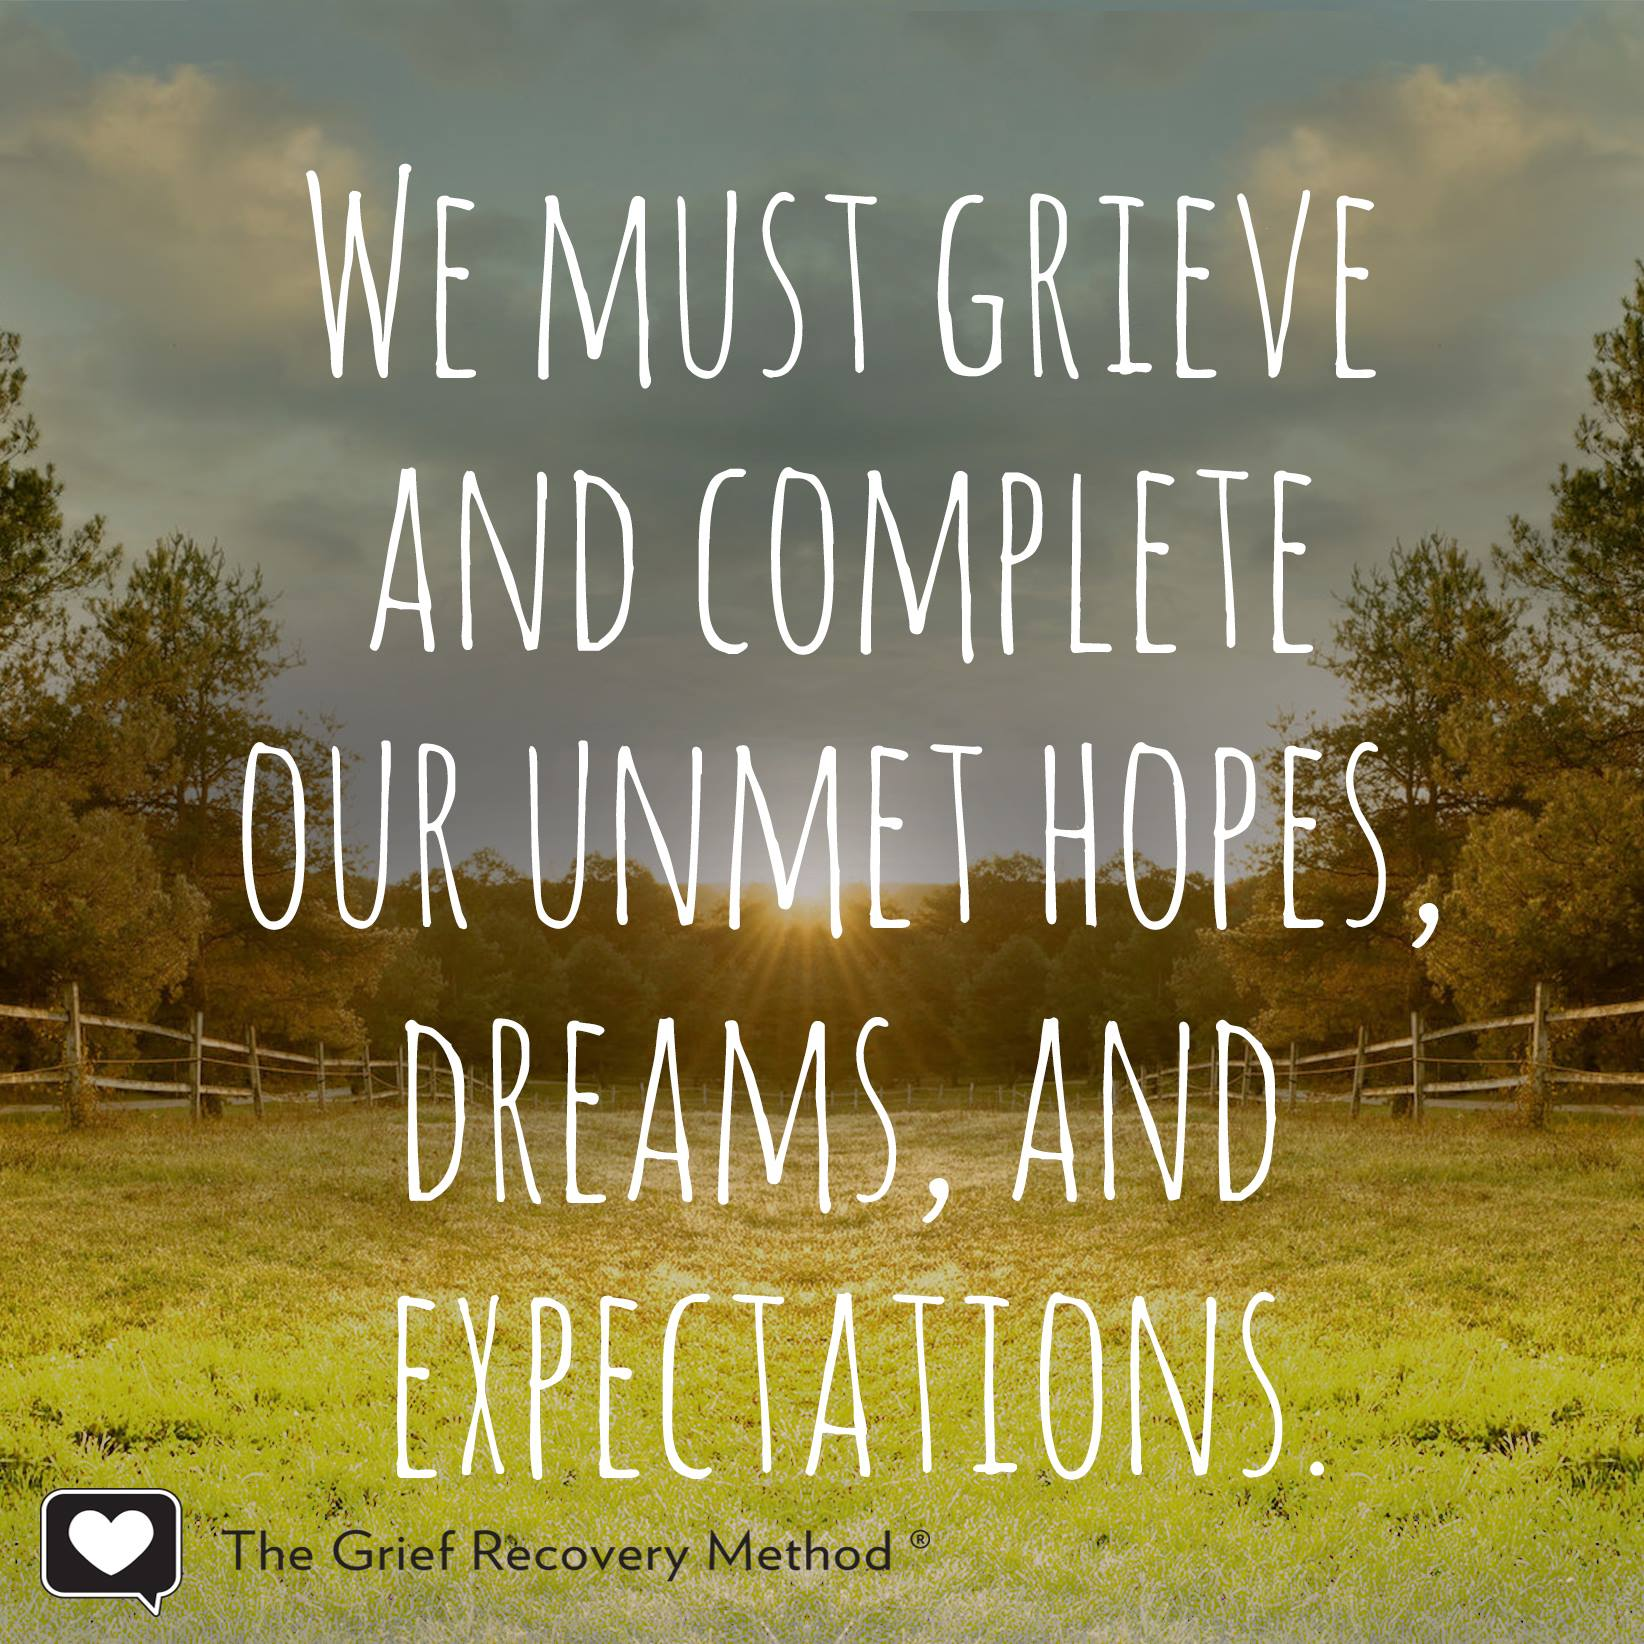 grieve and complete unmet hopes dreams expectations.jpg